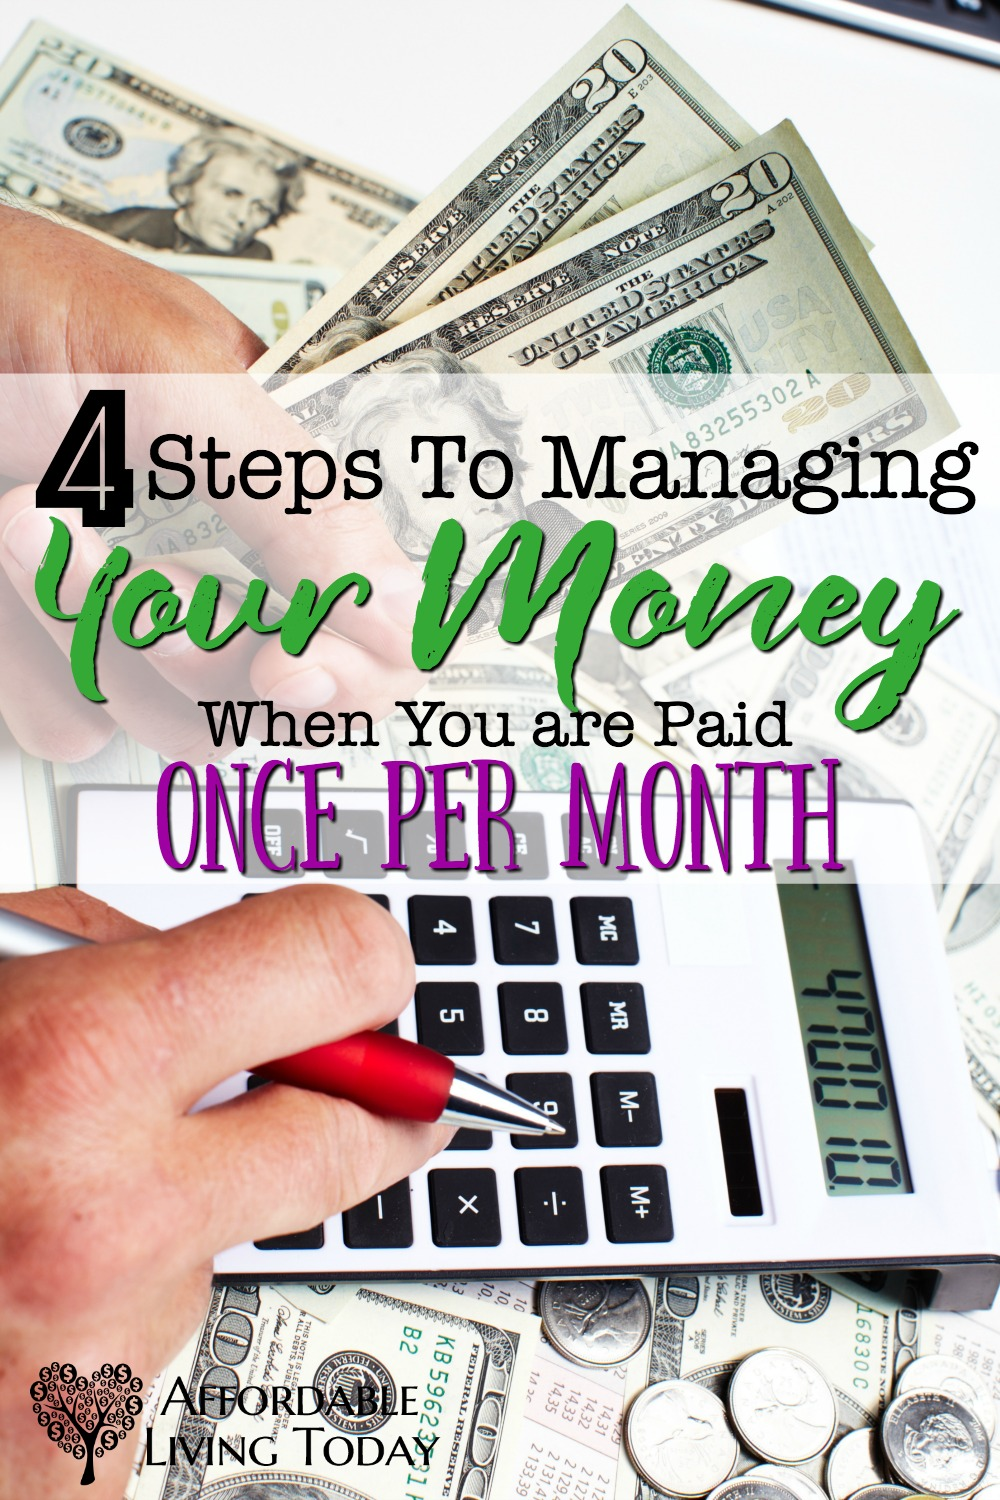 When you are only paid once per month, it can be hard to make the money last. Here are some great tips for keeping on tabs of your budget with one paycheck.